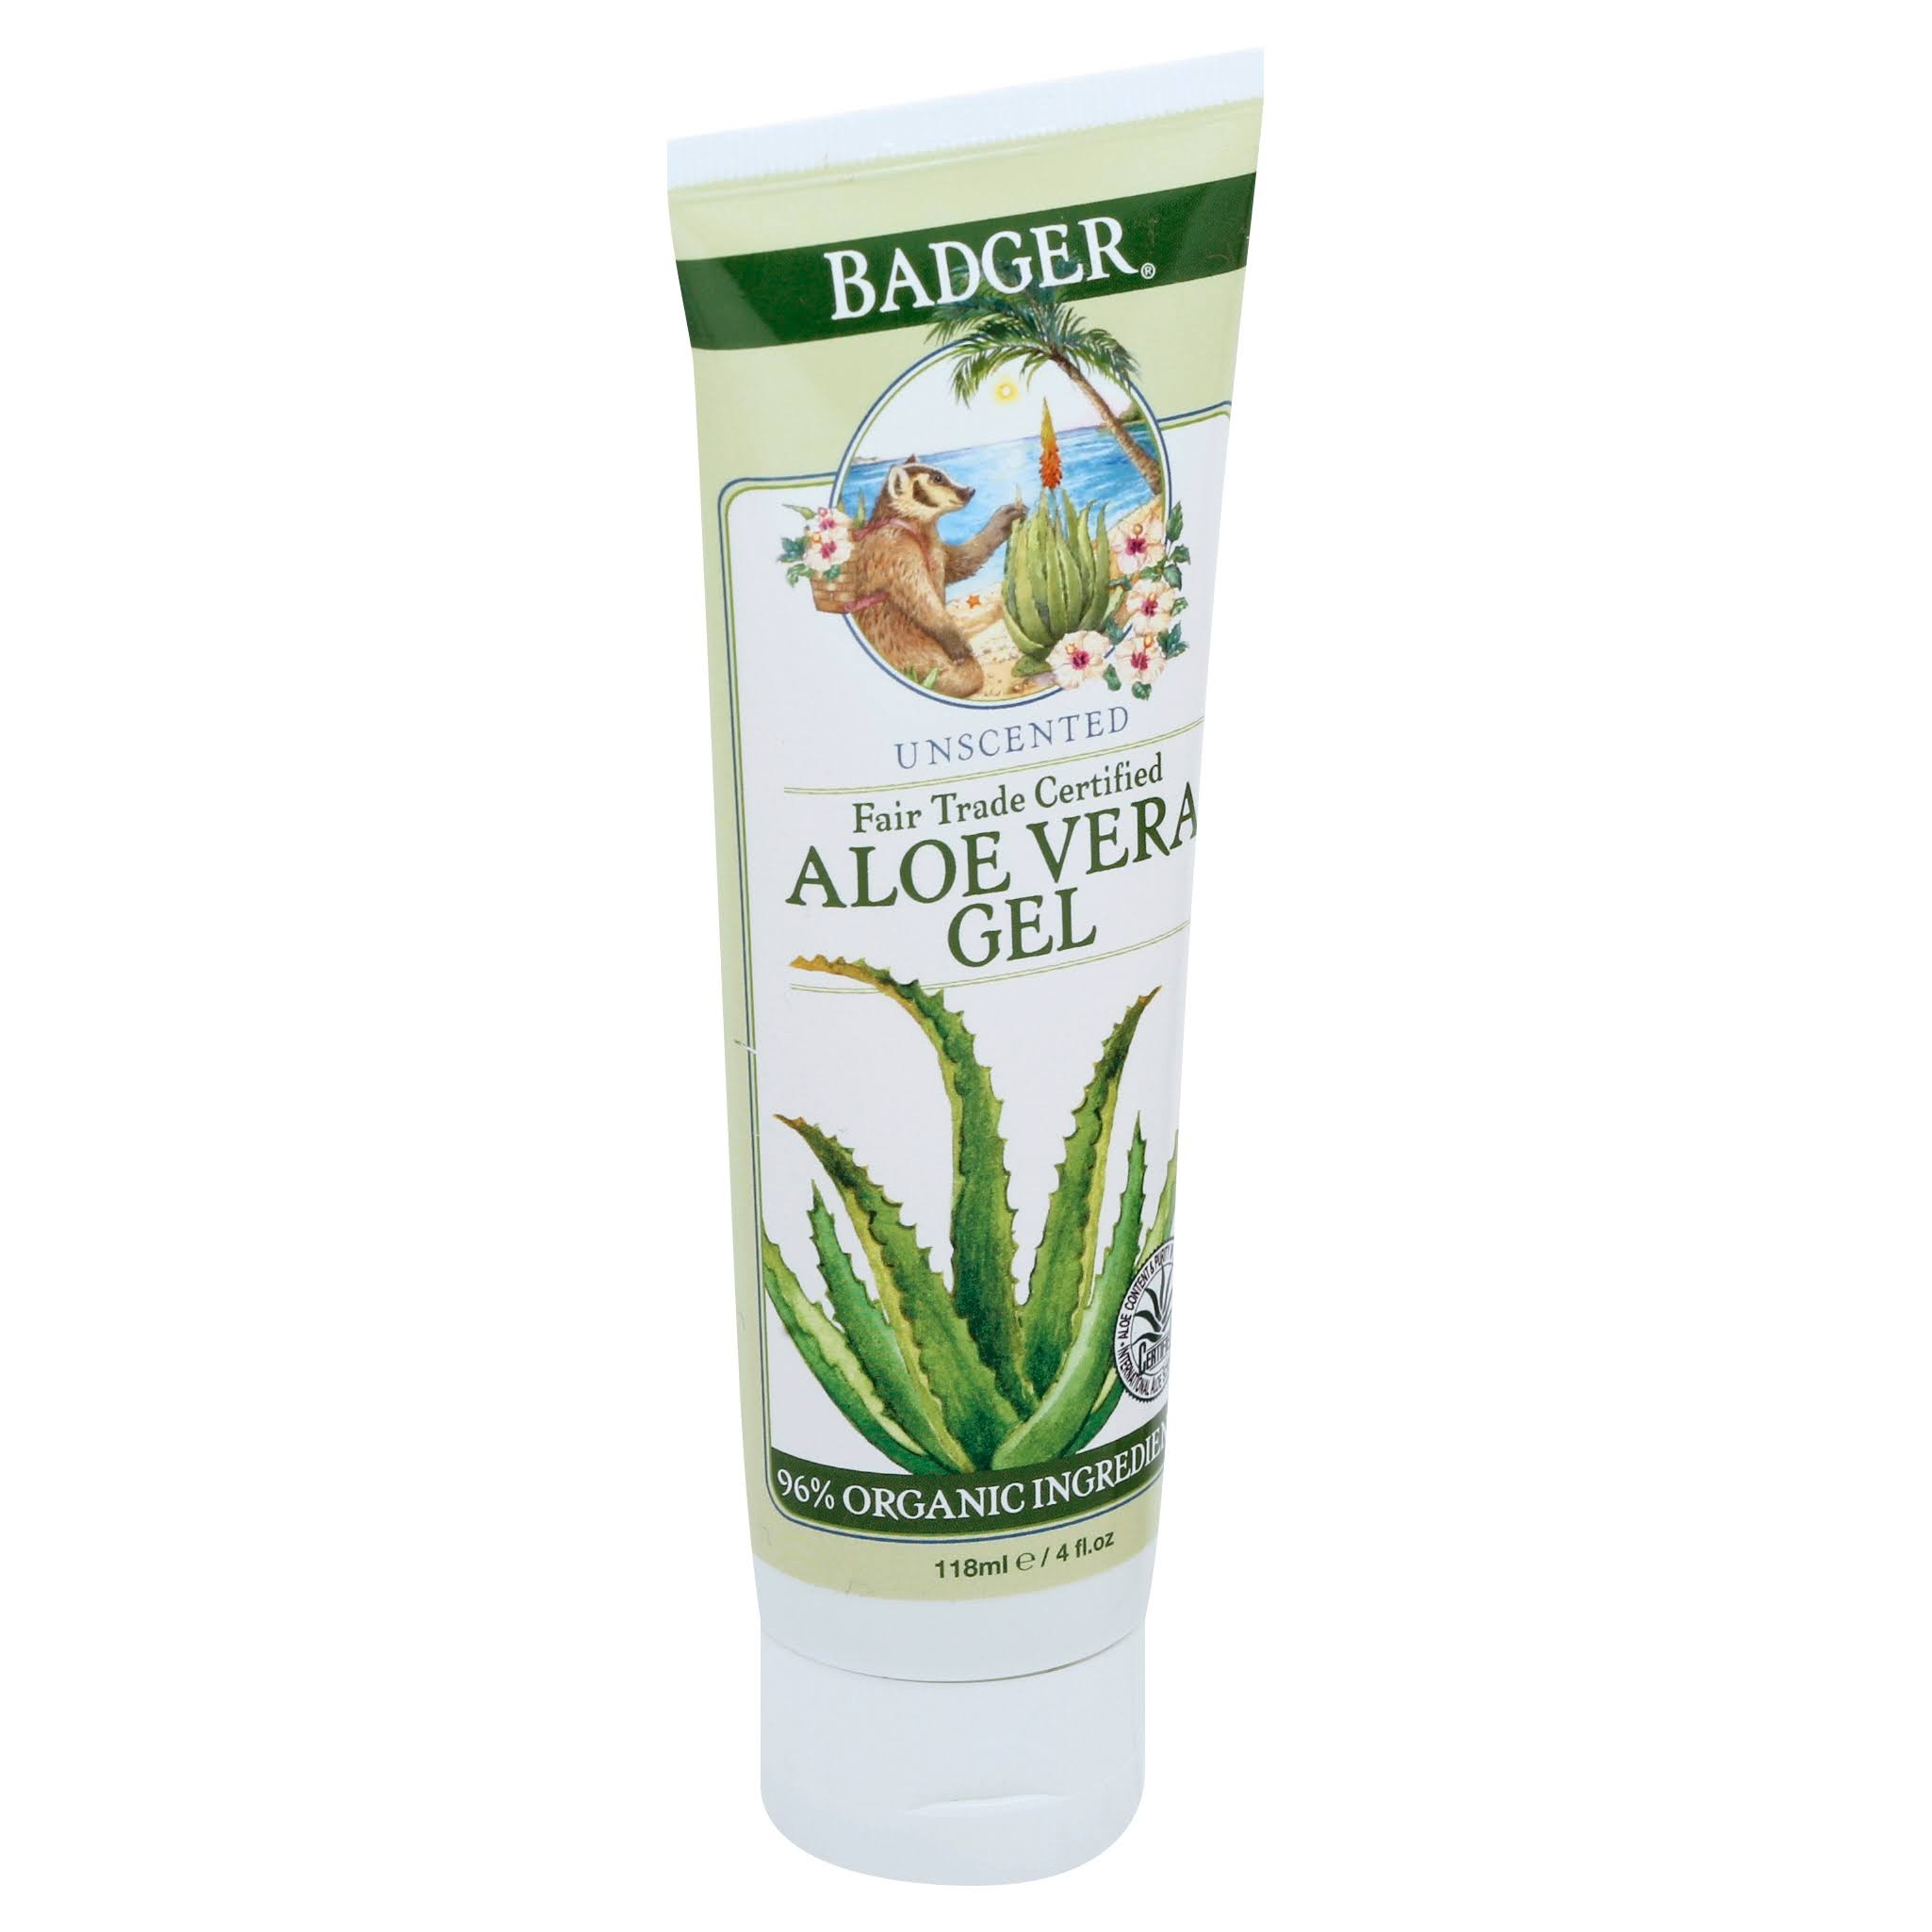 Badger Company Aloe Vera Gel - Unscented, 4oz